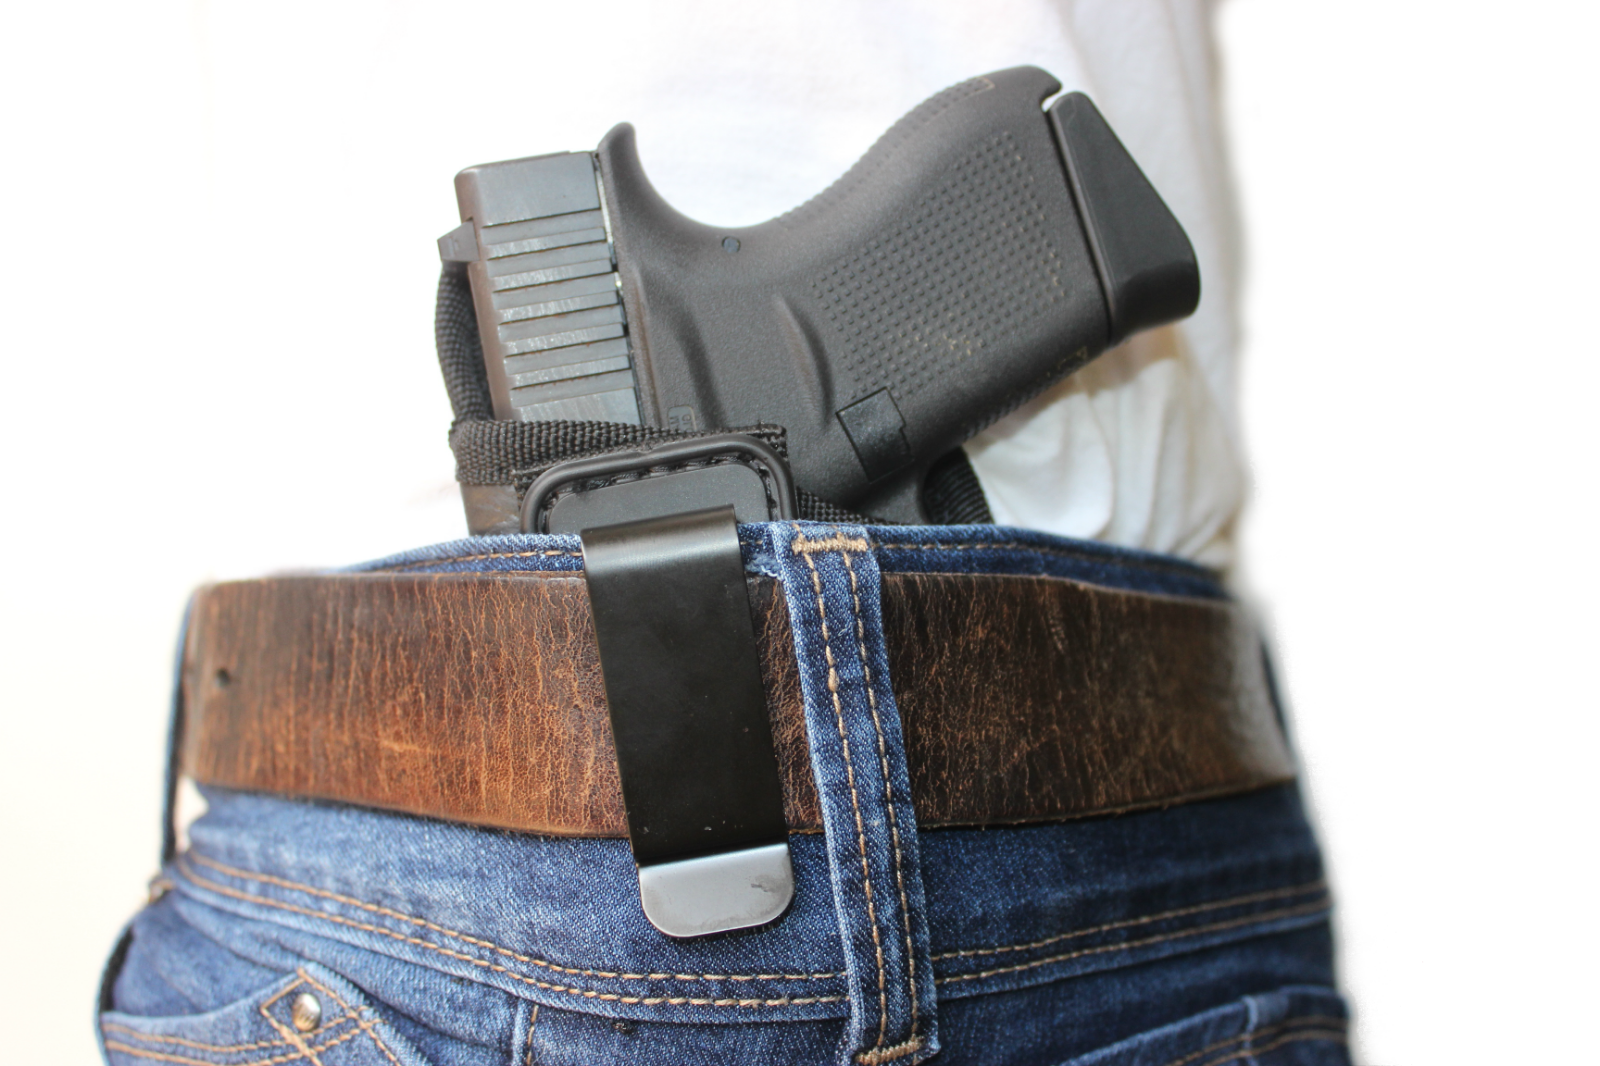 HOLSTER IWB BLACK KYDEX FITS FN 5.7 MK2 With crimson trace cmr-201 FIVE SEVEN